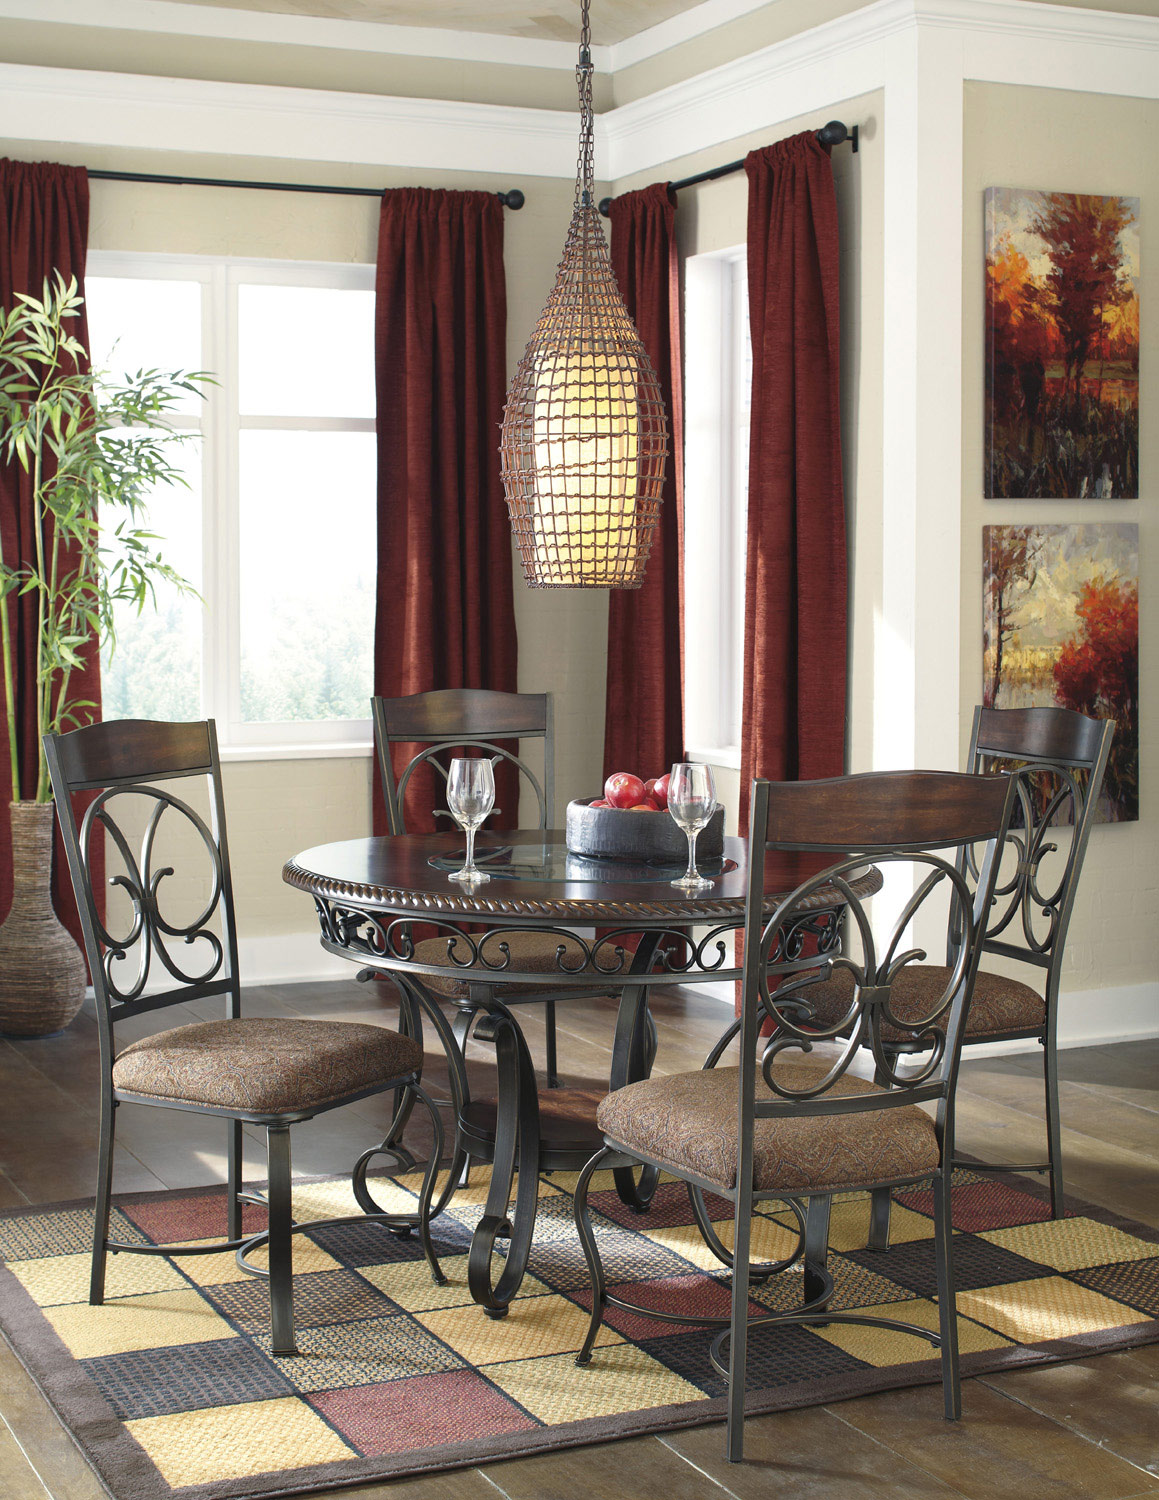 Glambrey Round Dining Room Table | Ashley | Home Gallery Stores ...